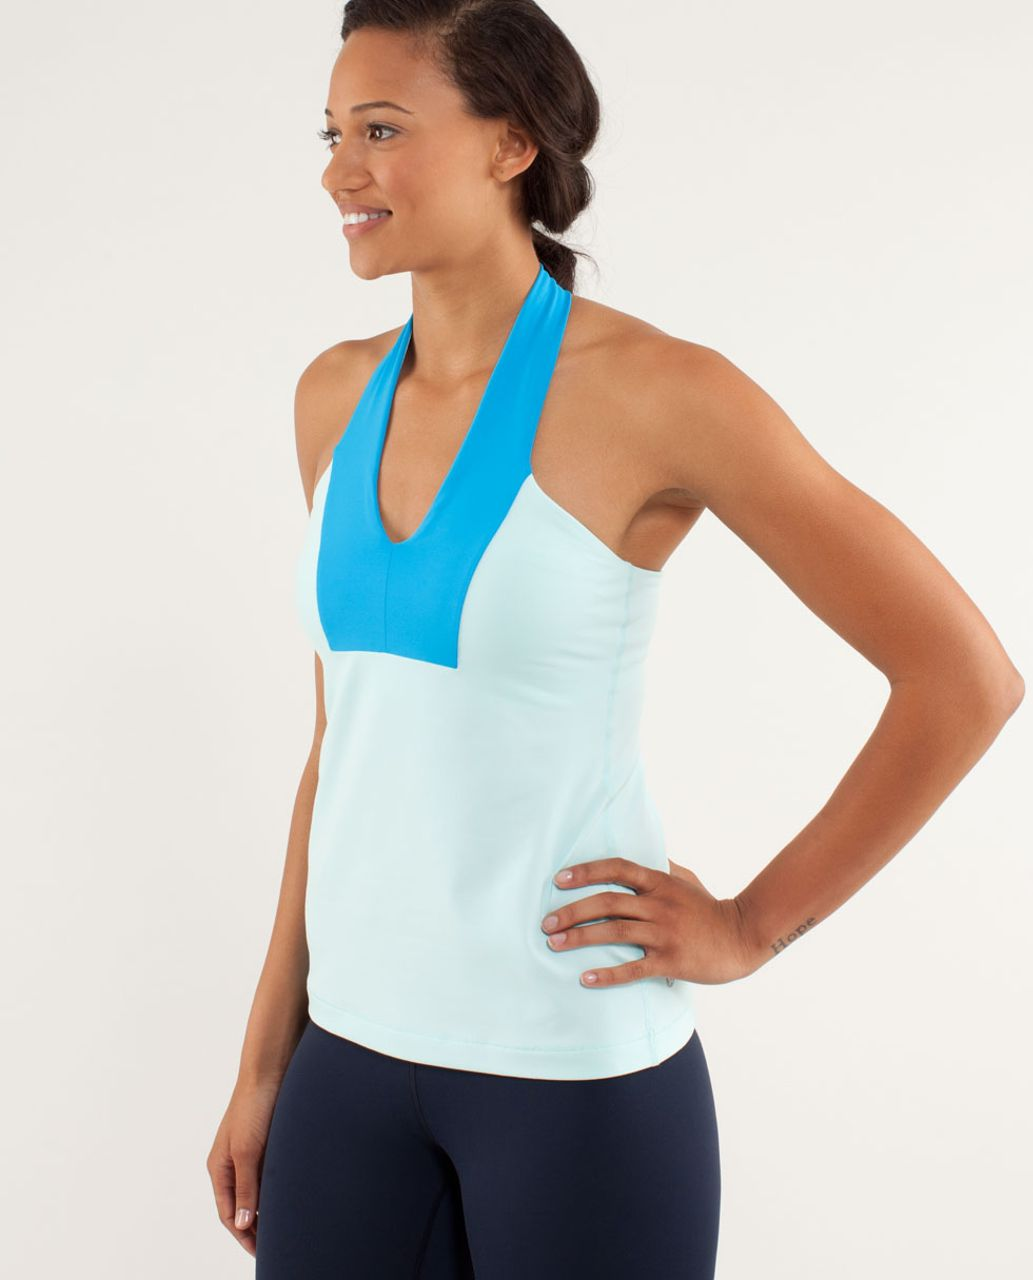 Lululemon Open Soul Tank - Aquamarine / Beach Blanket Blue / Aquamarine